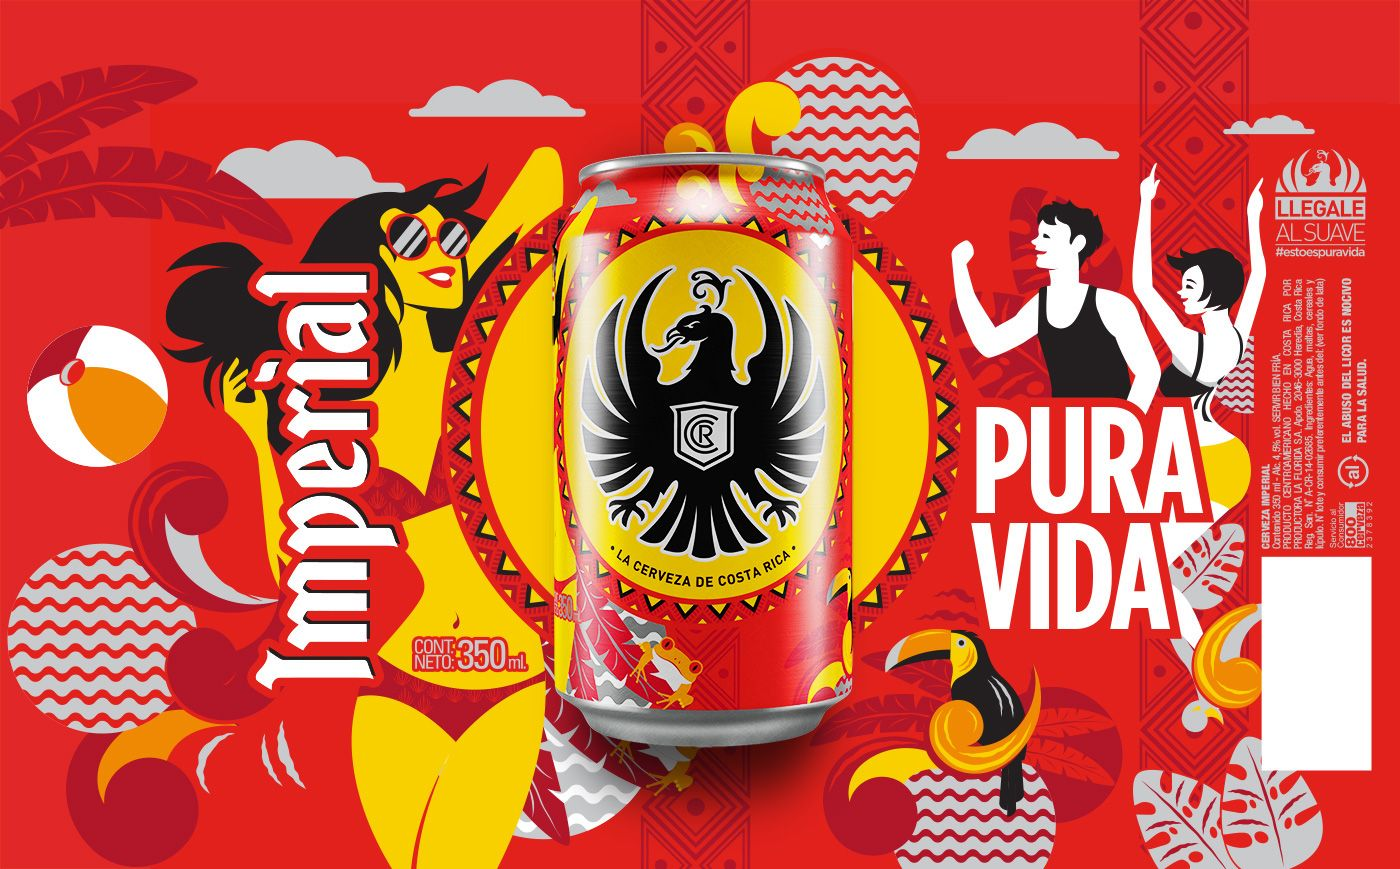 Imperial Summer Edition 2018 On Behance In 2020 Beer Illustration Creative Packaging Design Packaging Design Inspiration